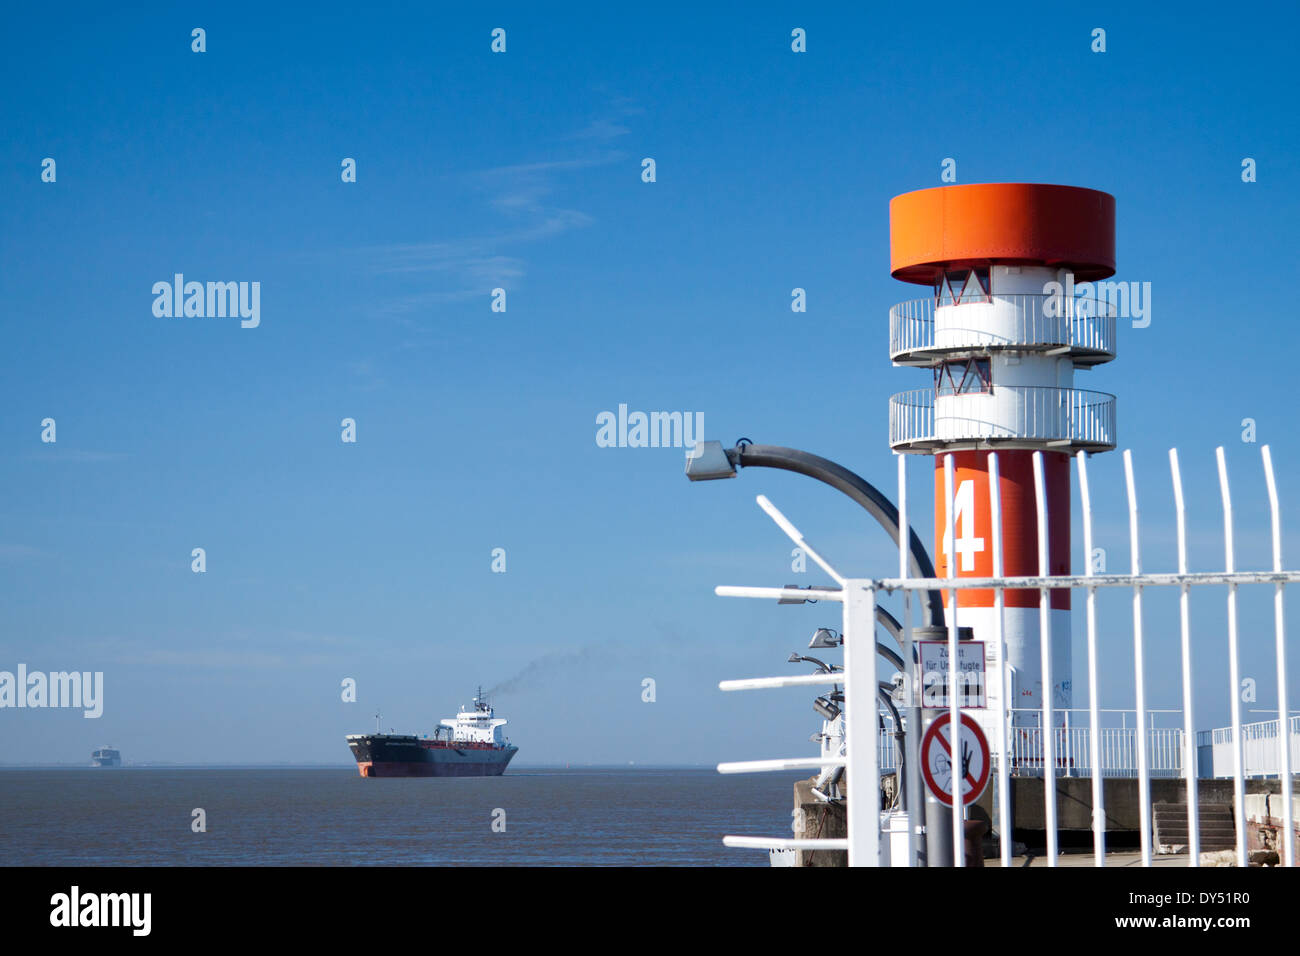 Chemical tanker Seychelles Progress seen behind a navigation light at the entrance to the Kiel Canal - Stock Image